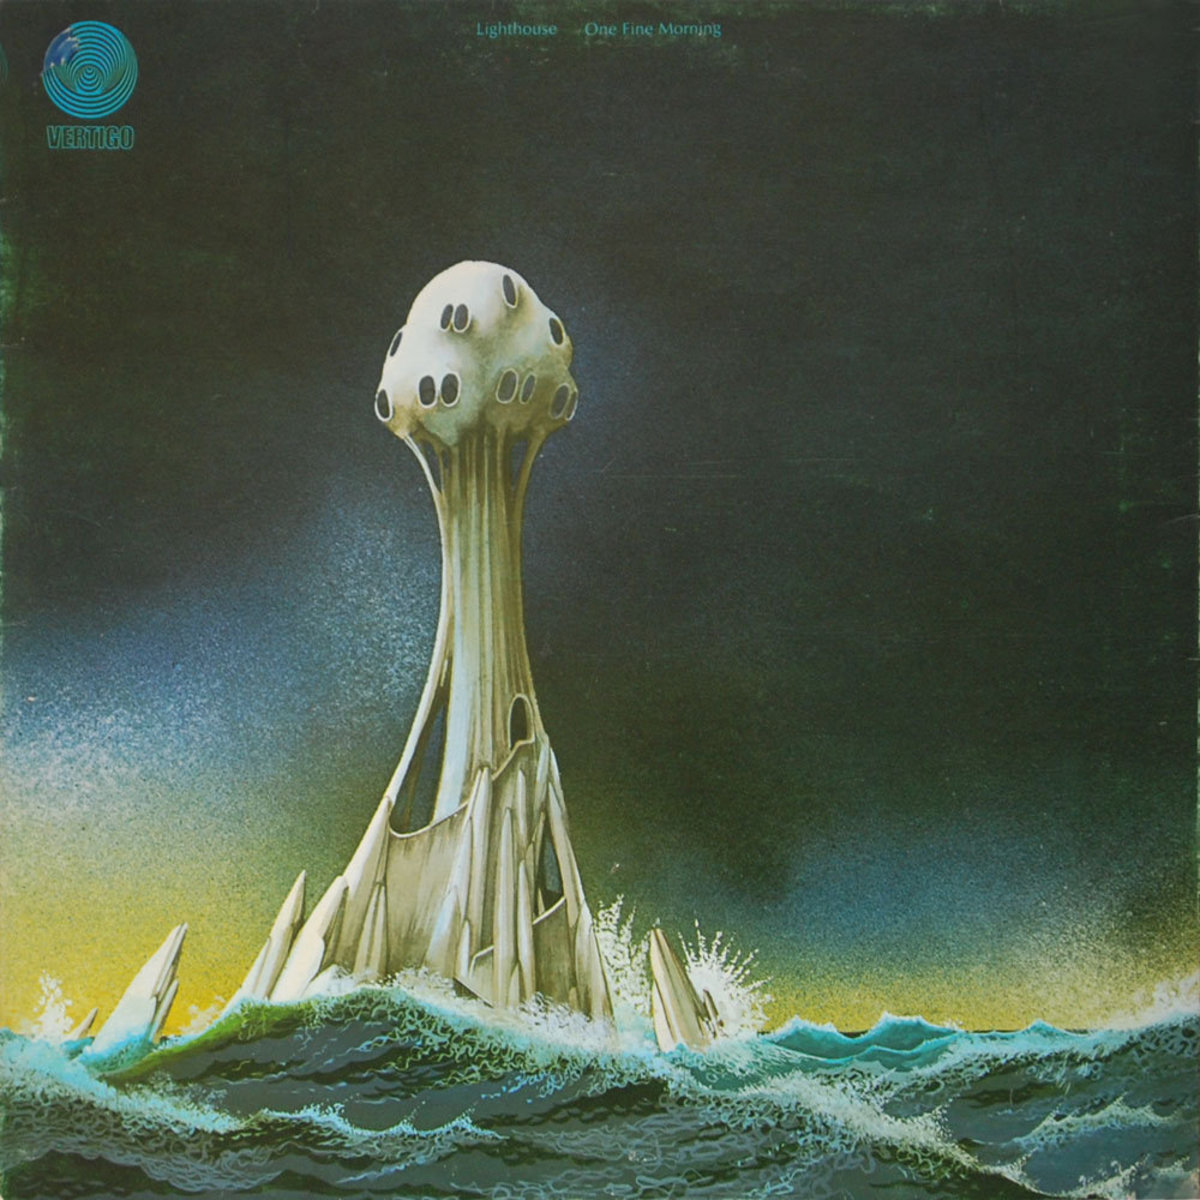 "Lighthouse ""One Fine Morning"" Vertigo Records 6342 010 12"" LP Vinyl Record, German Pressing (1971) Album Cover Art & Design by Roger Dean"